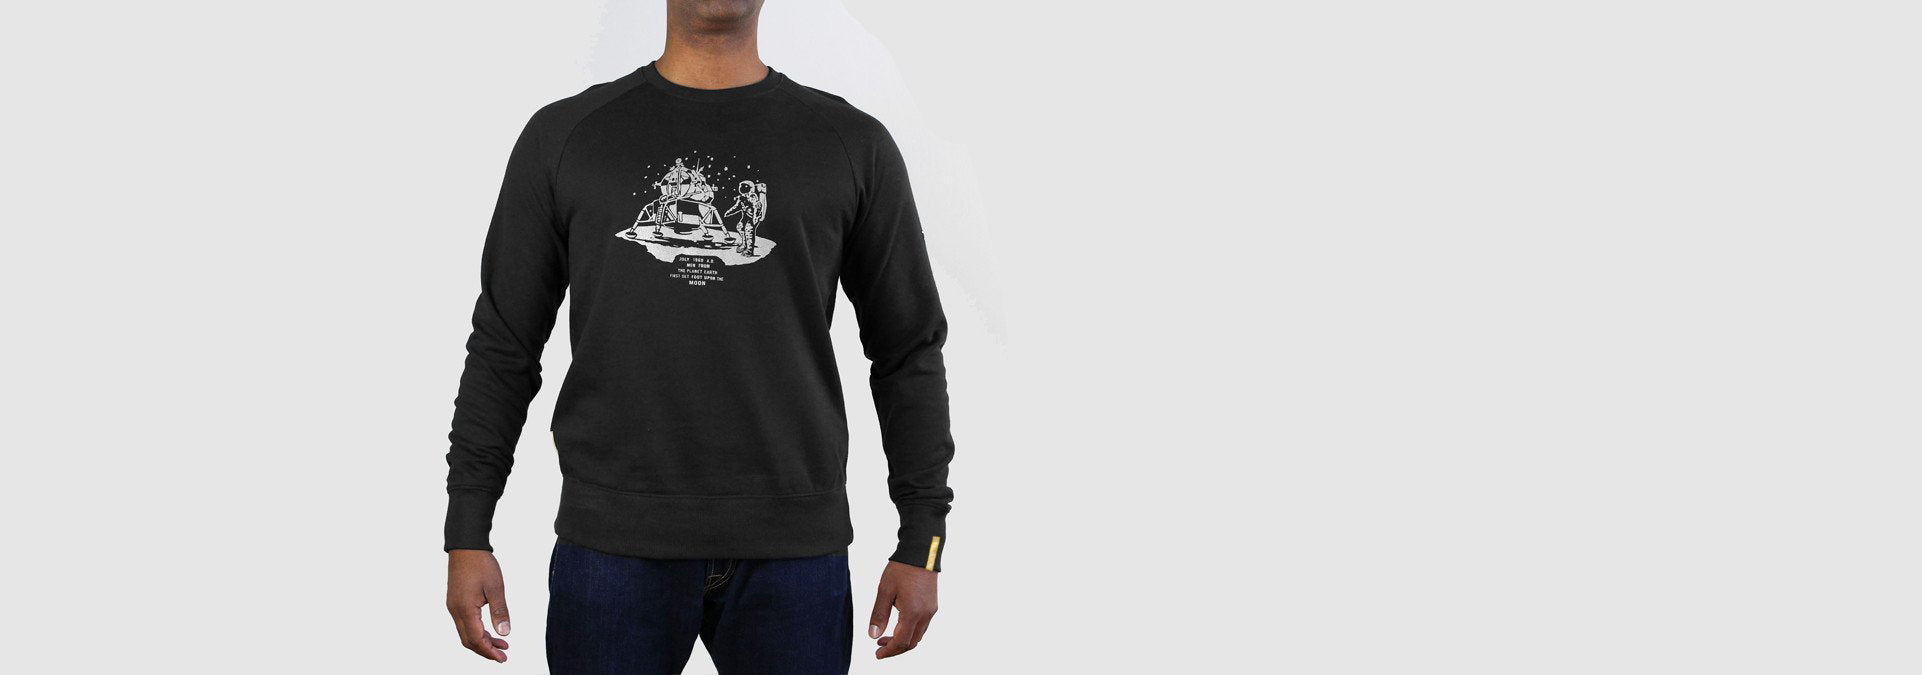 Apollo 11 Sweatshirt Black